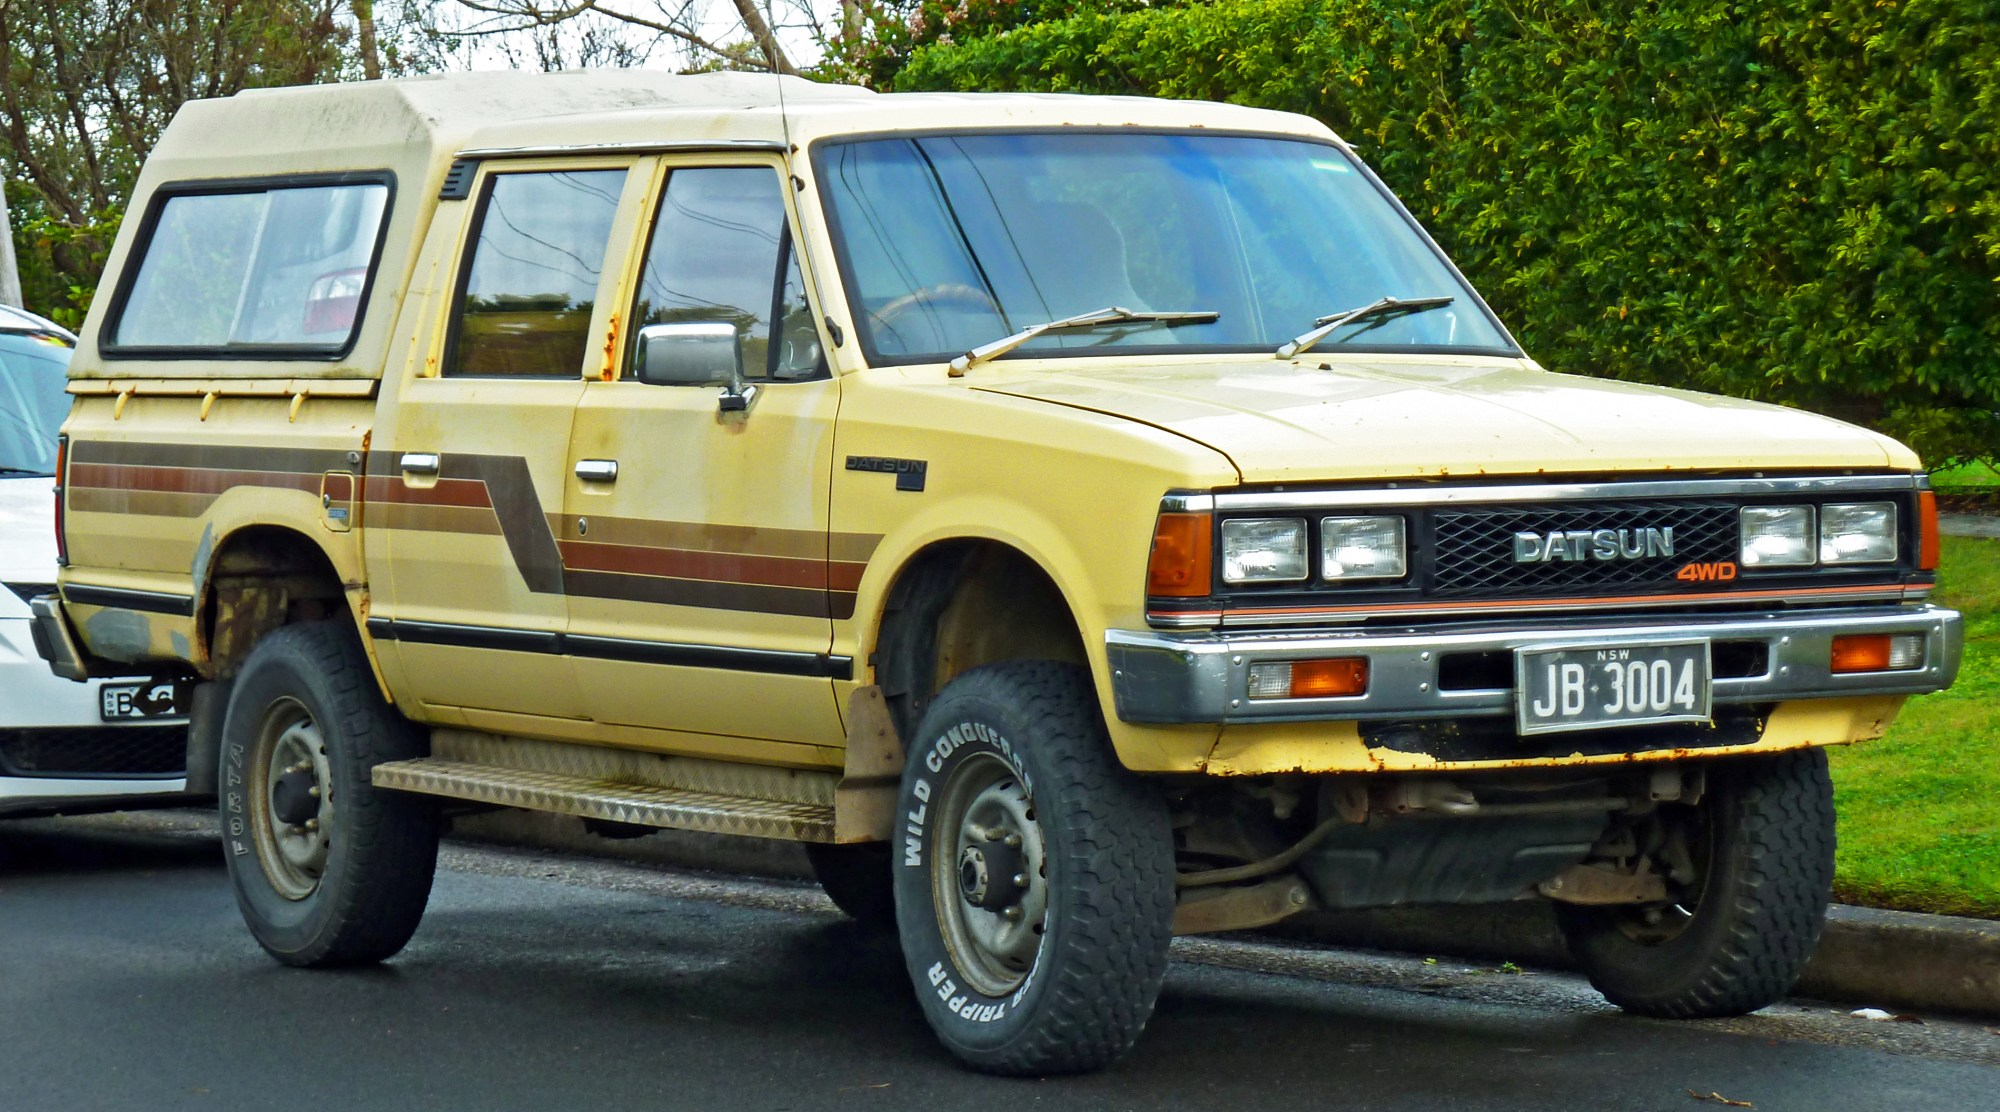 hight resolution of file 1983 1984 datsun 720 4wd 4 door utility 2011 07